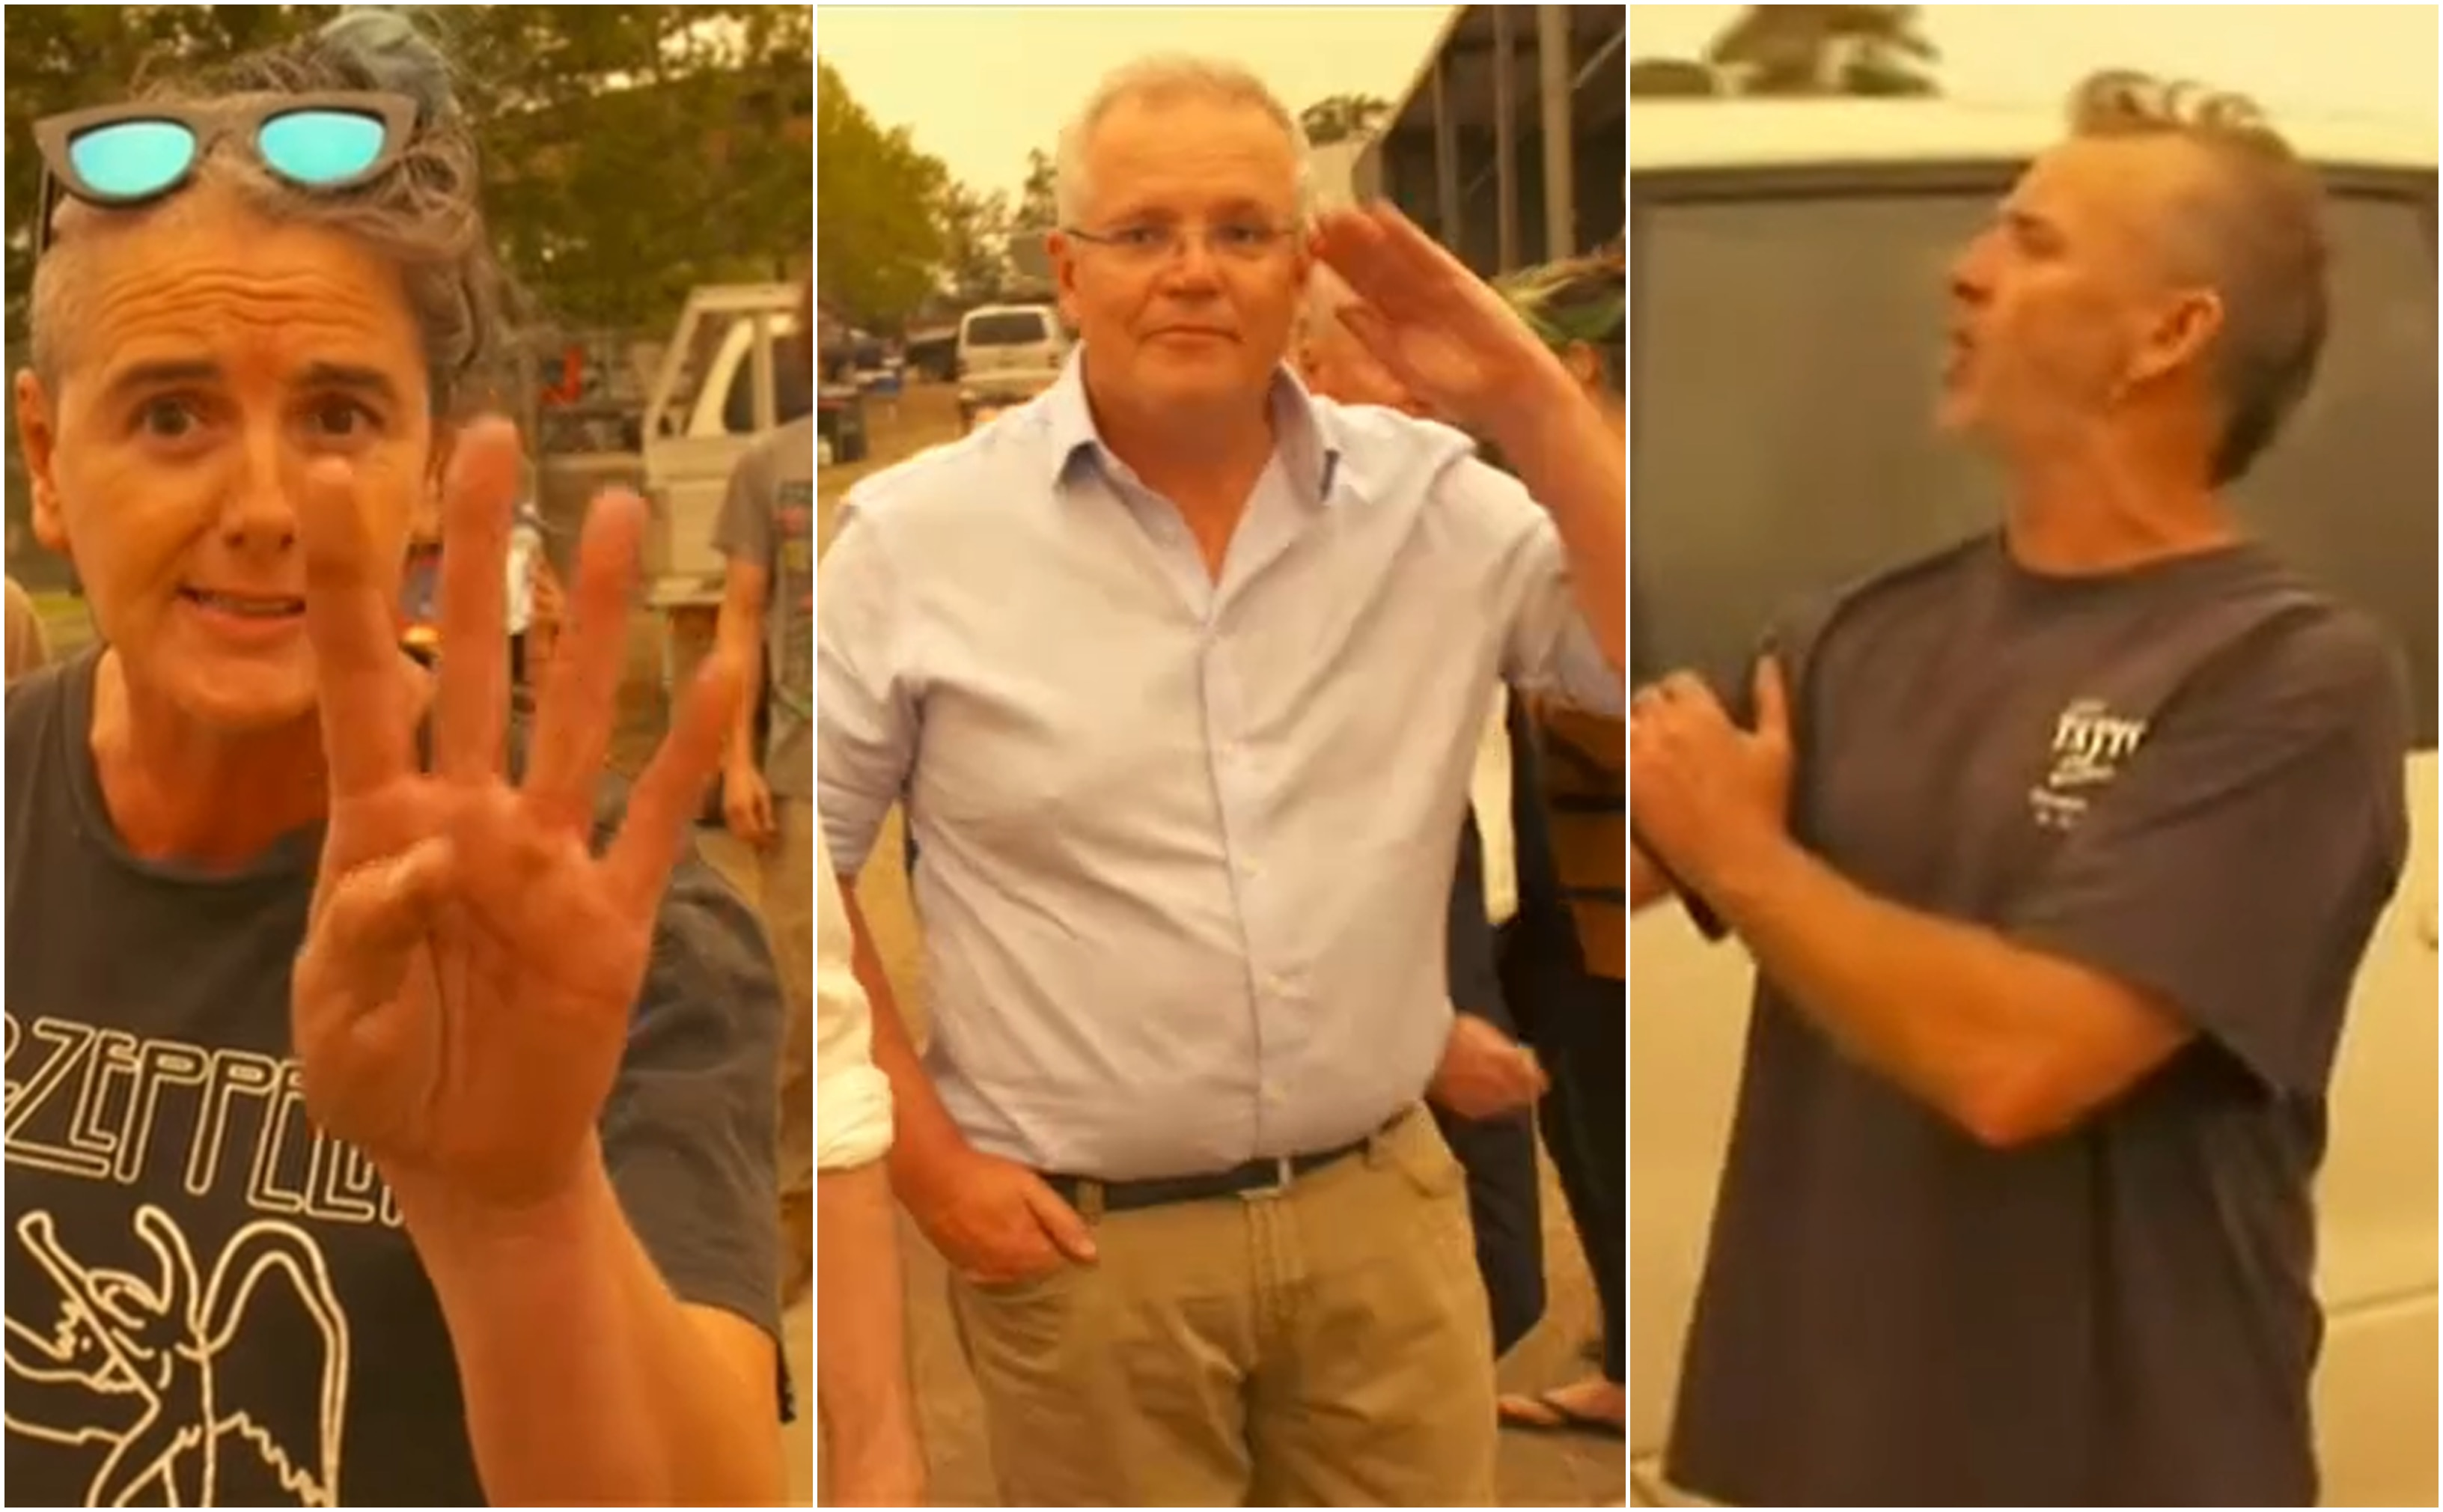 Prime Minister Scott Morrison is heckled as he tours a fire-ravaged community.